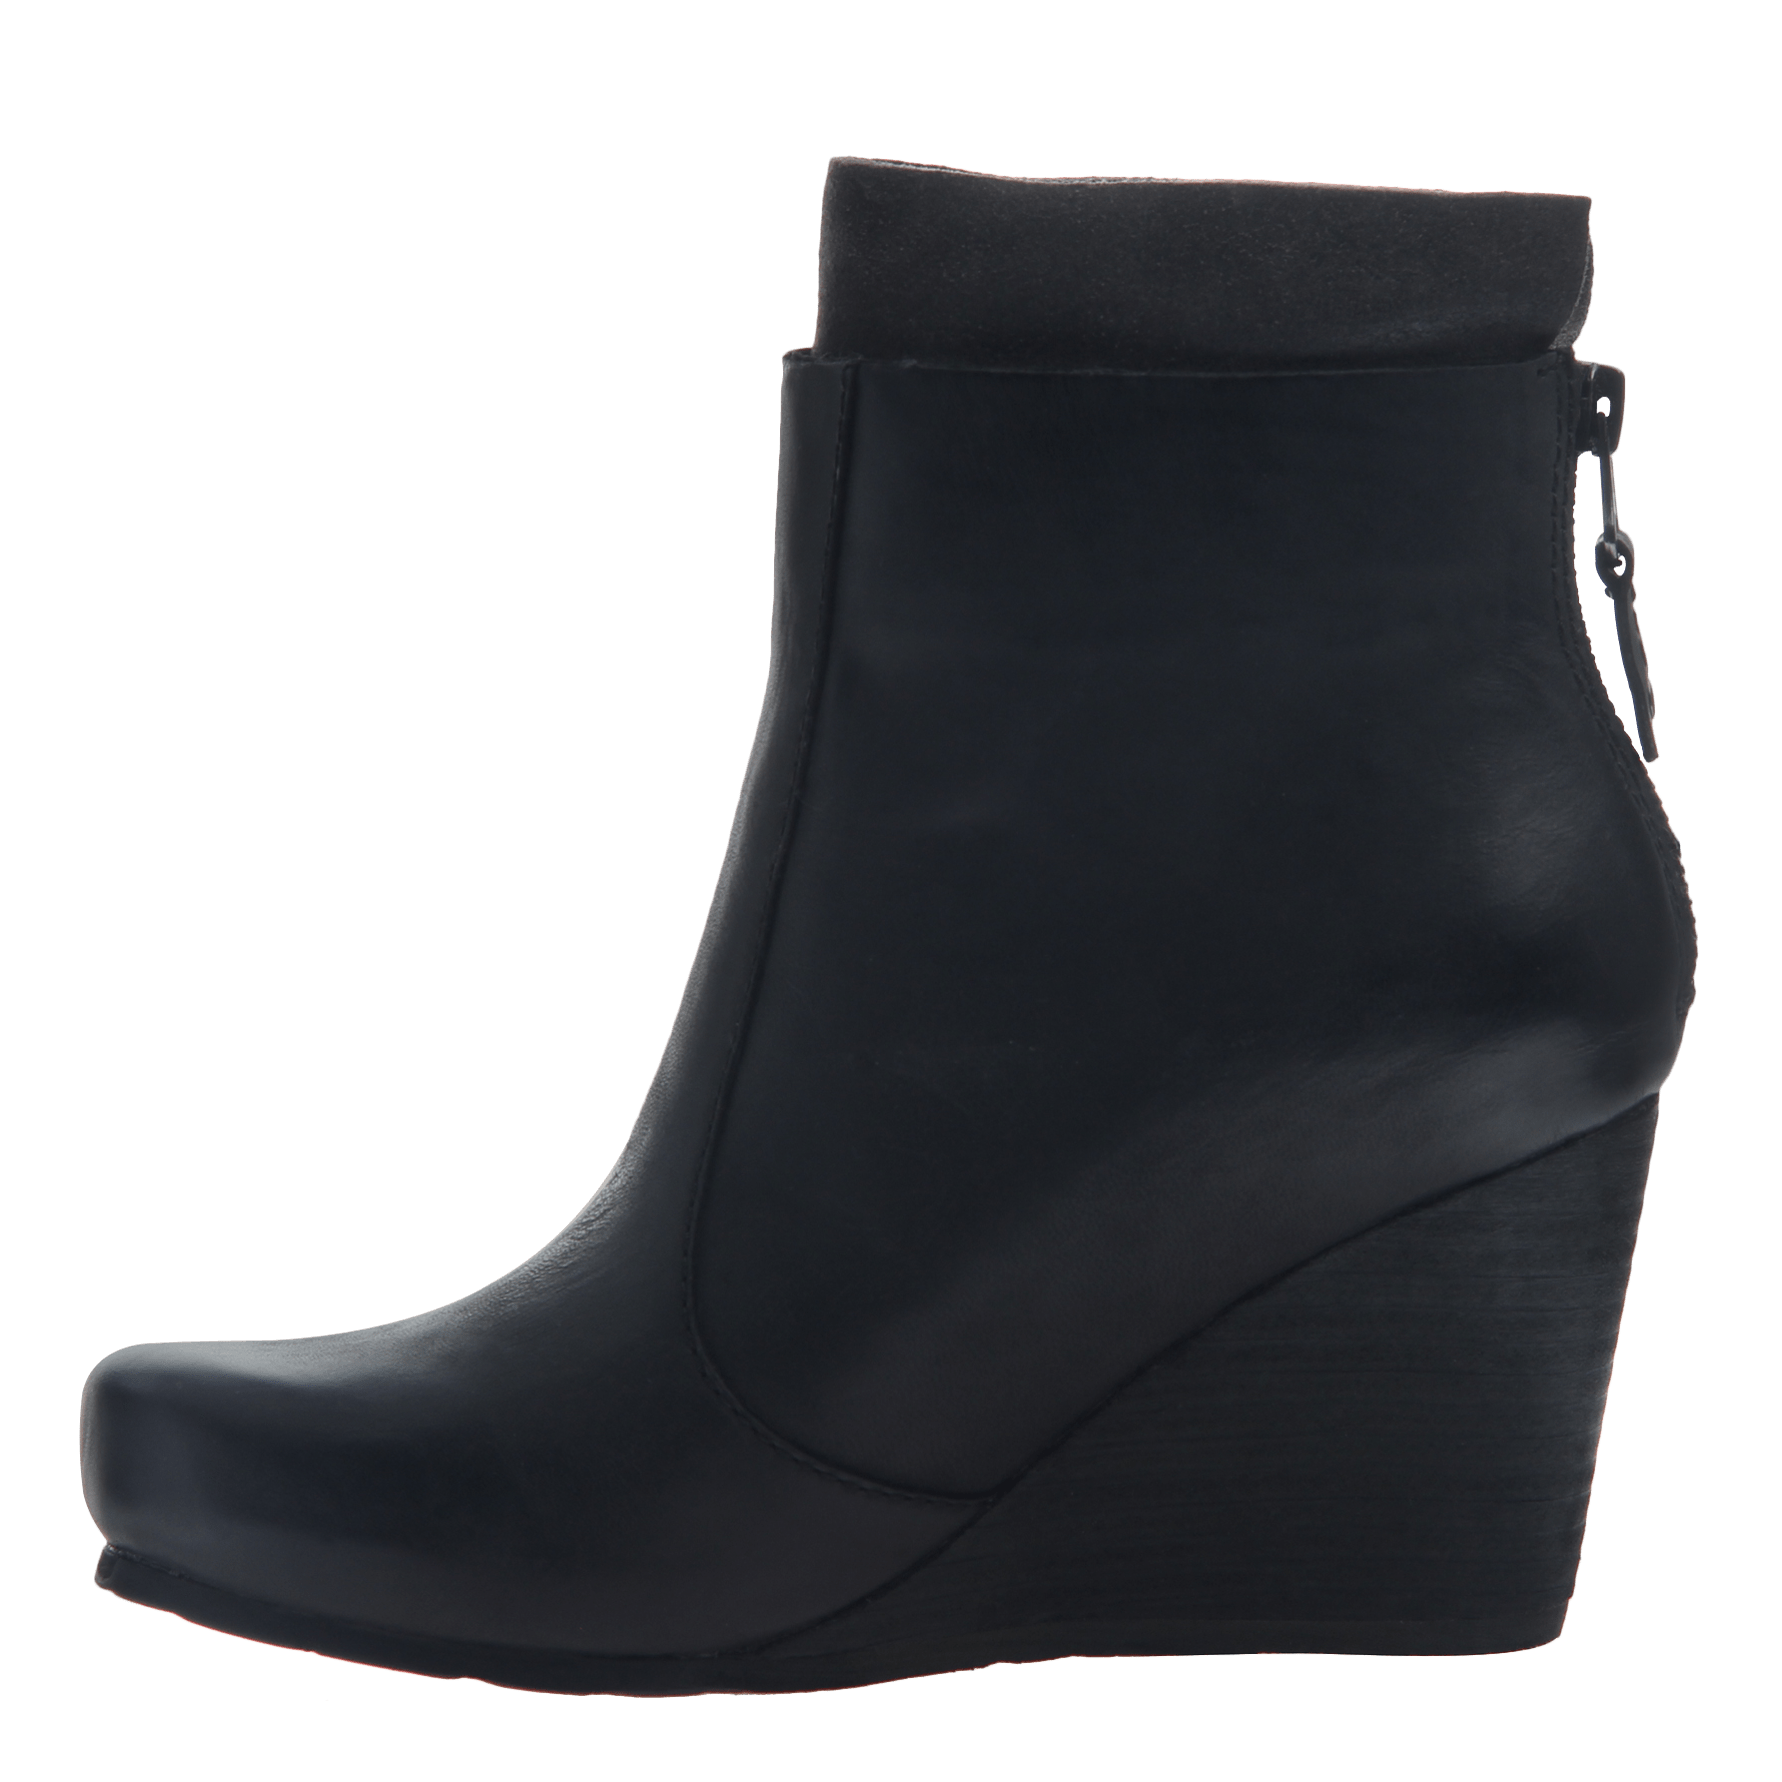 Vagary in Black Ankle Boots | Women's